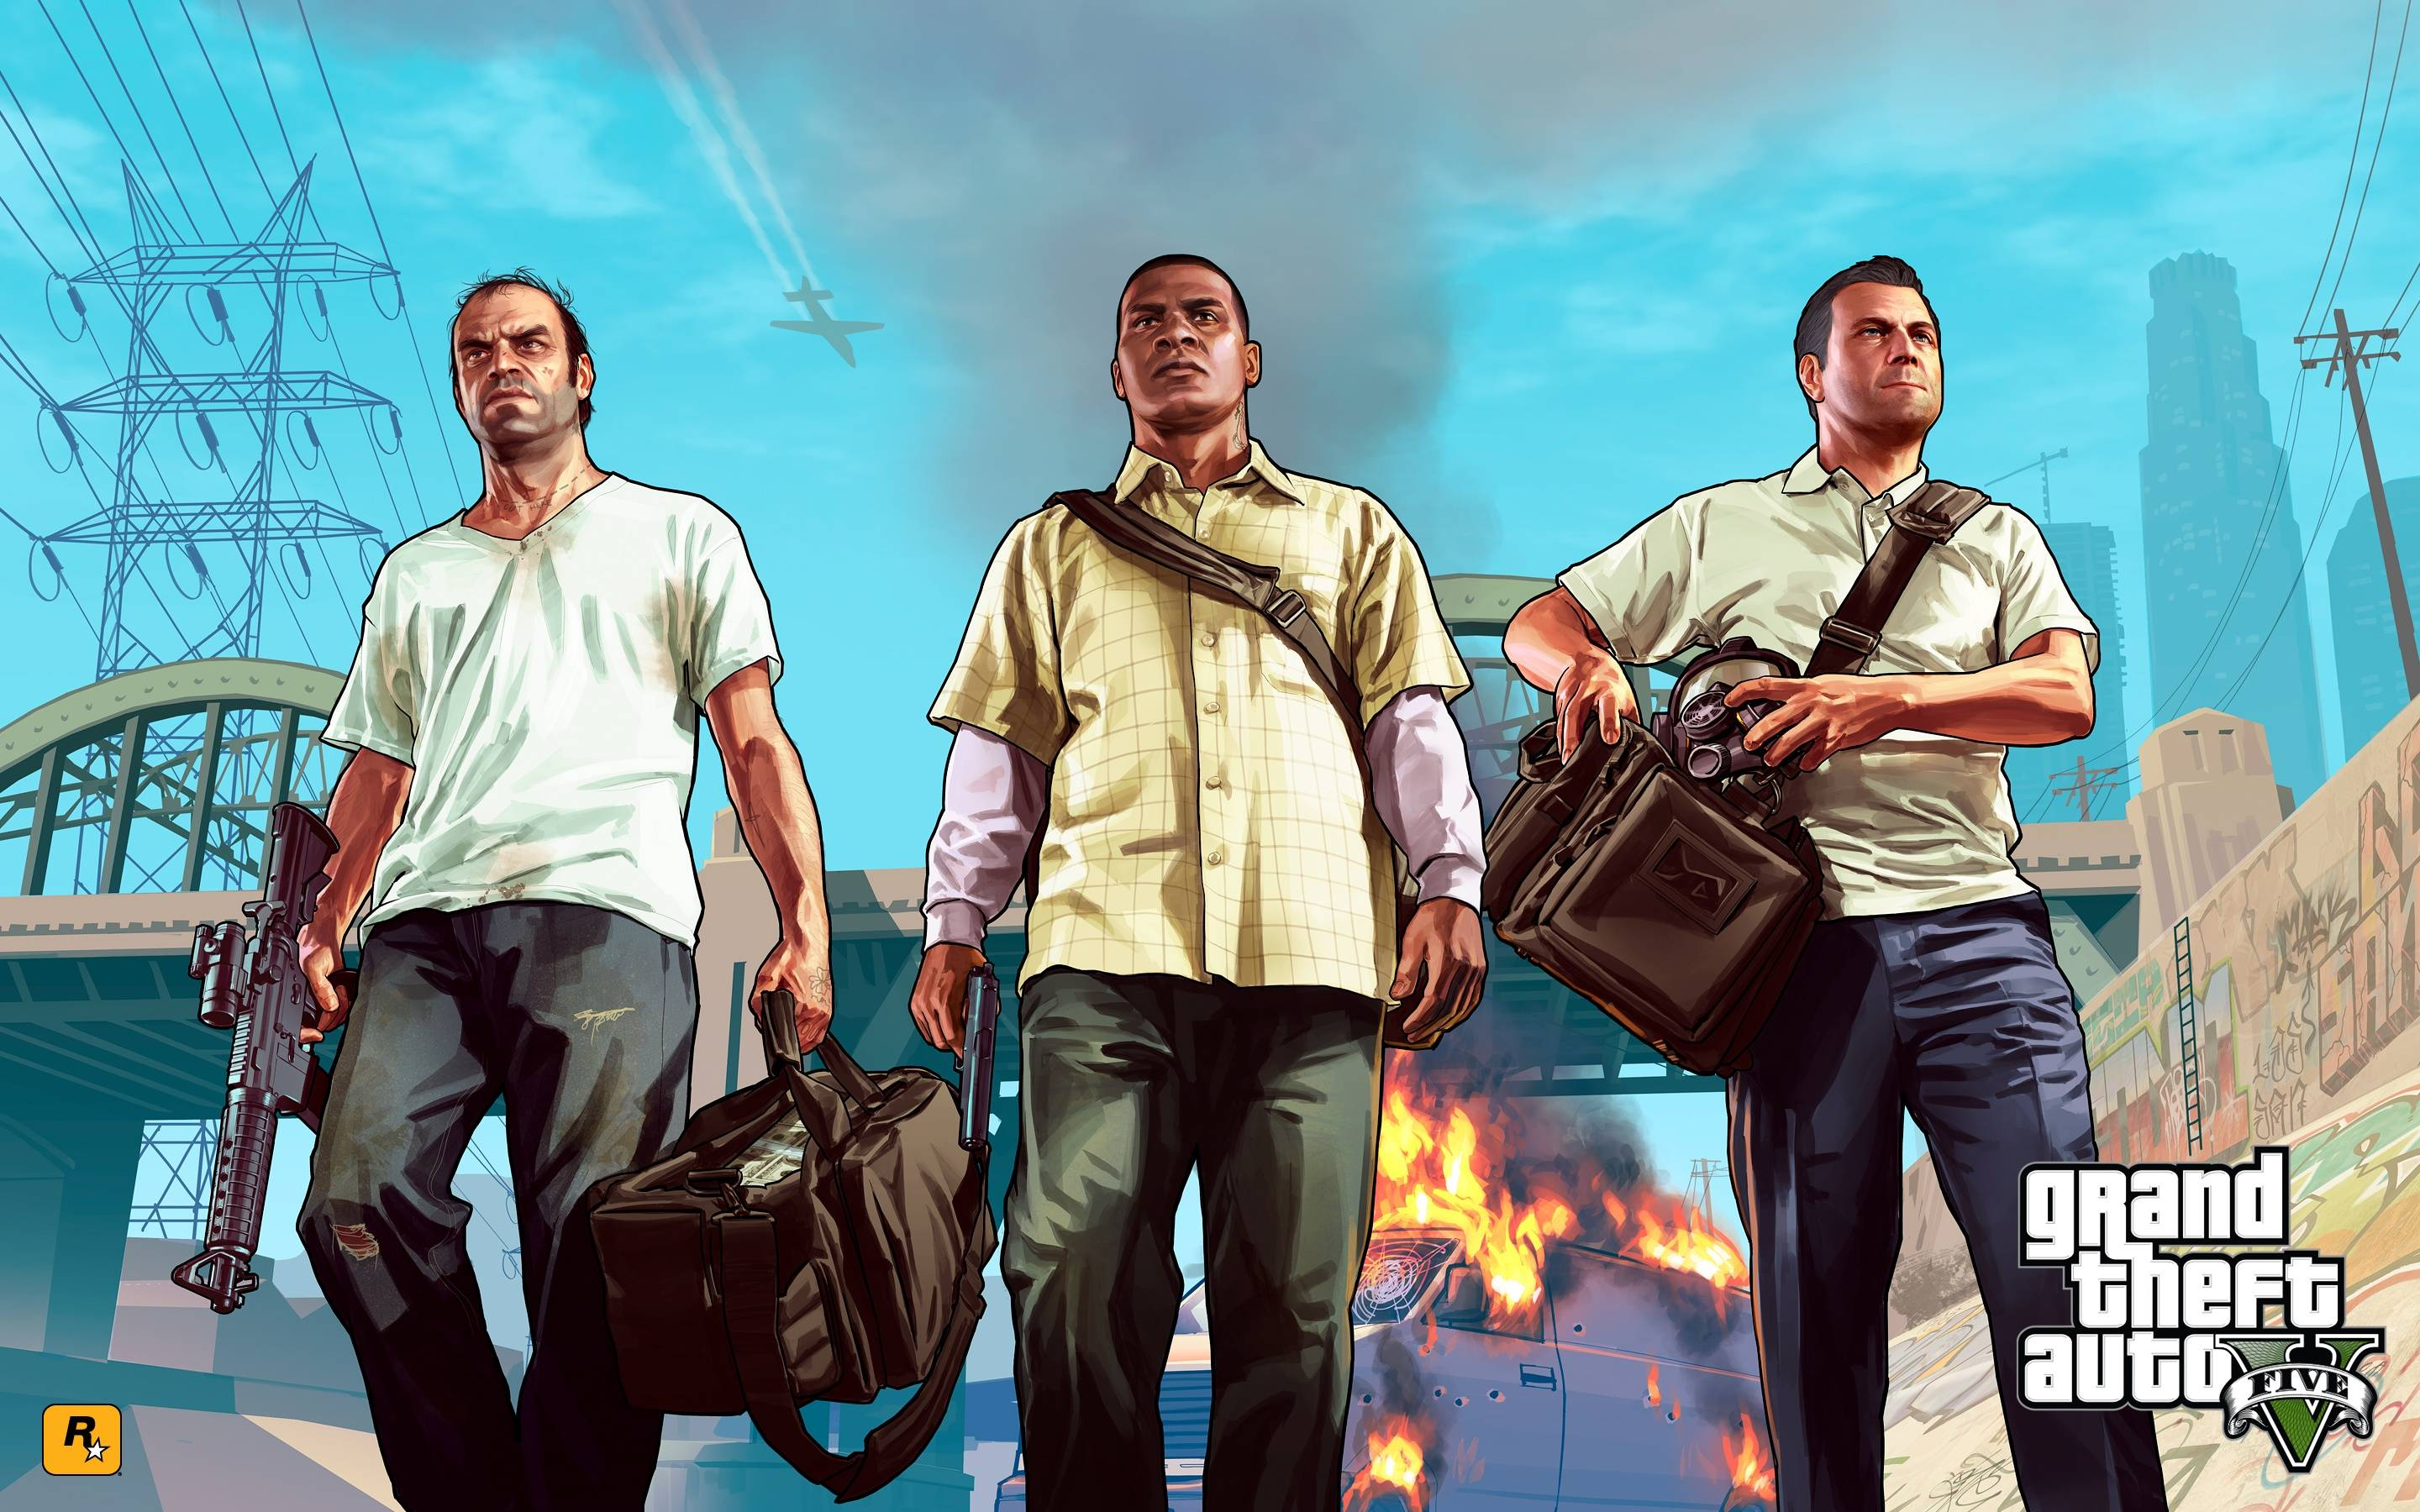 GTA HD Wallpapers